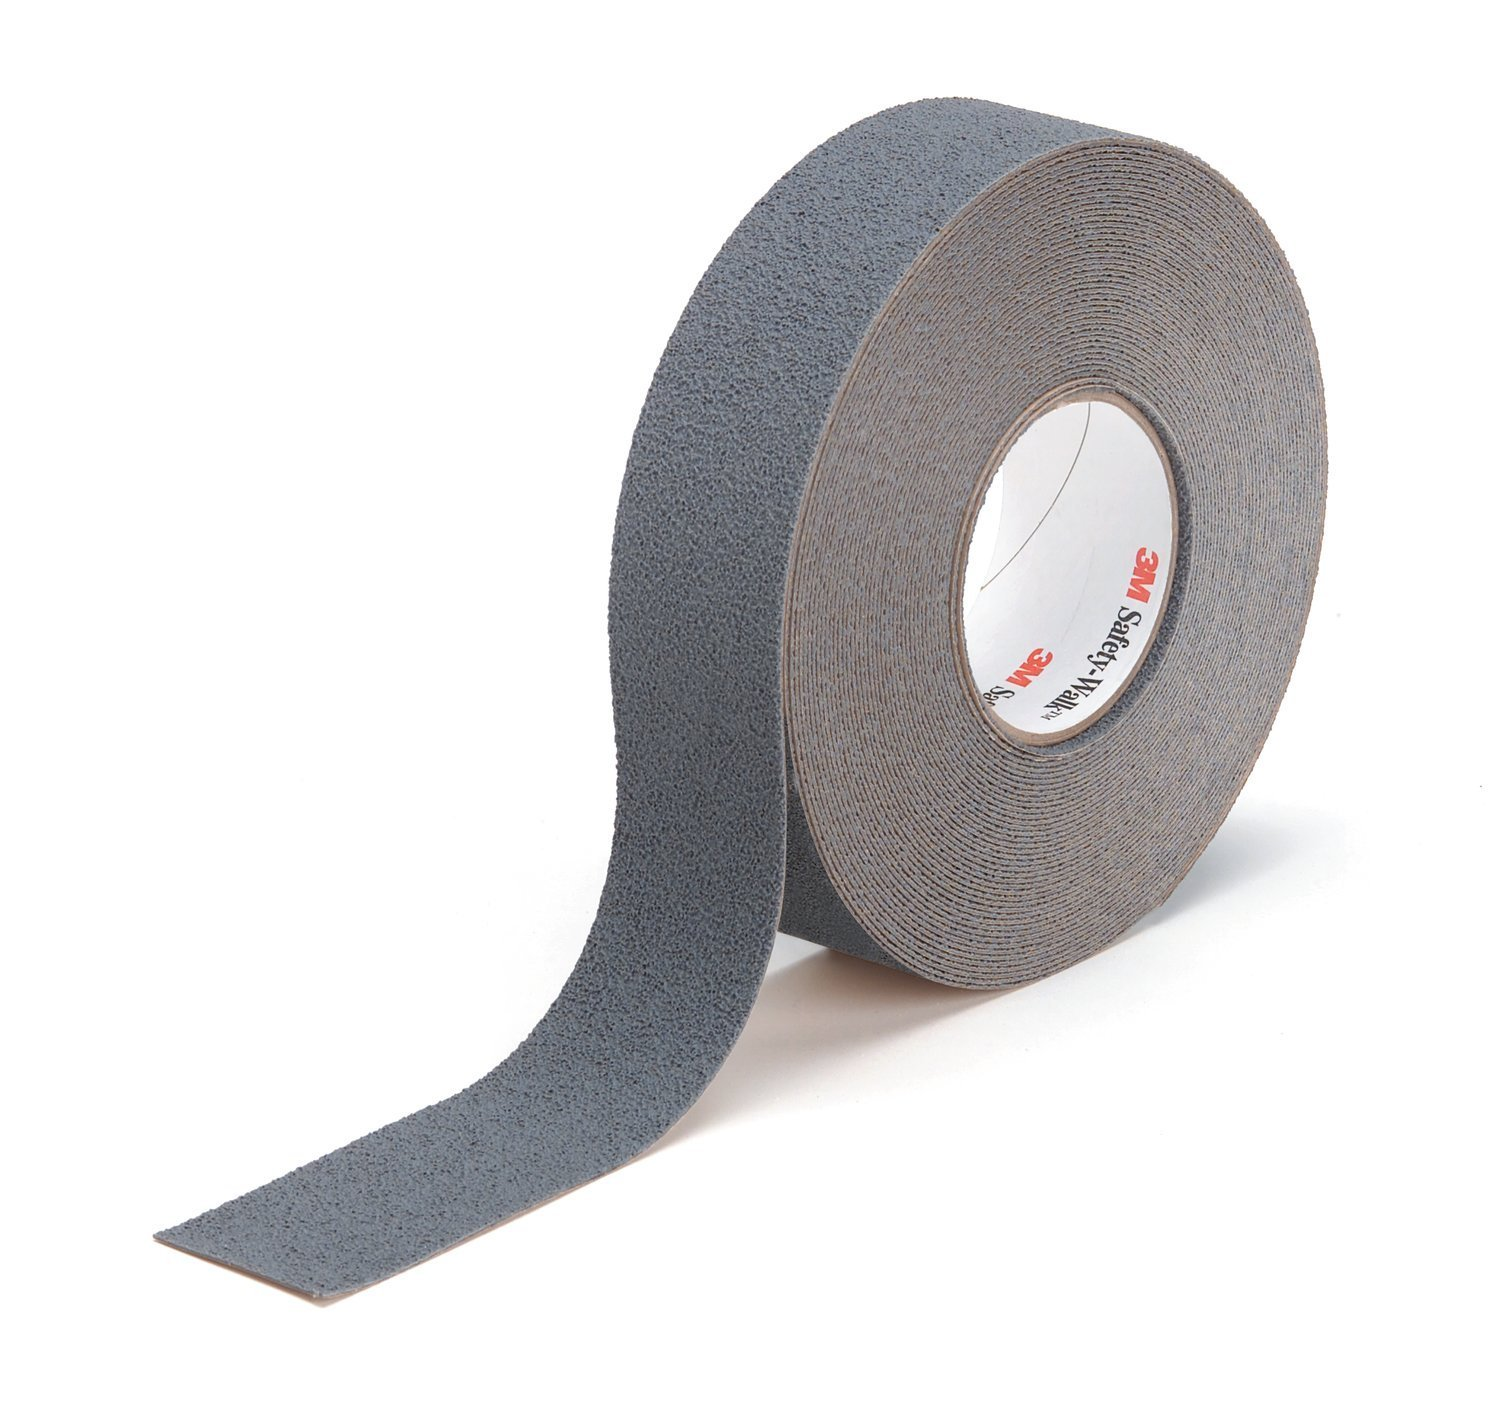 3M™ Safety-Walk™ Slip Resistant Resilient Medium Tape 300 Series, Grey, 102 mm x 18.3 m, 1/Case 7000033462